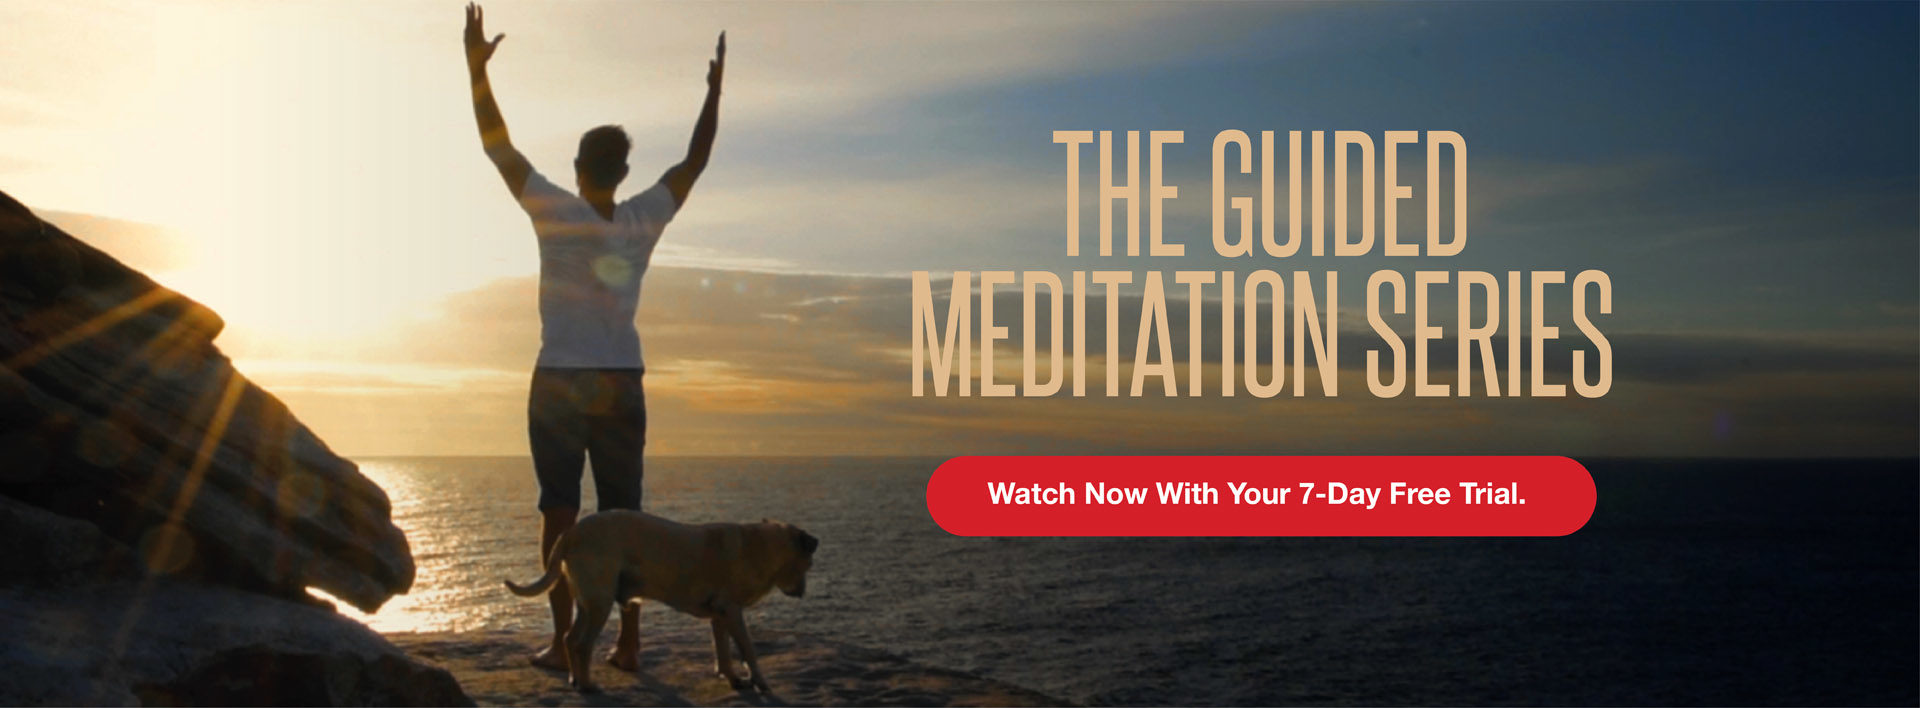 8-guided-meditation